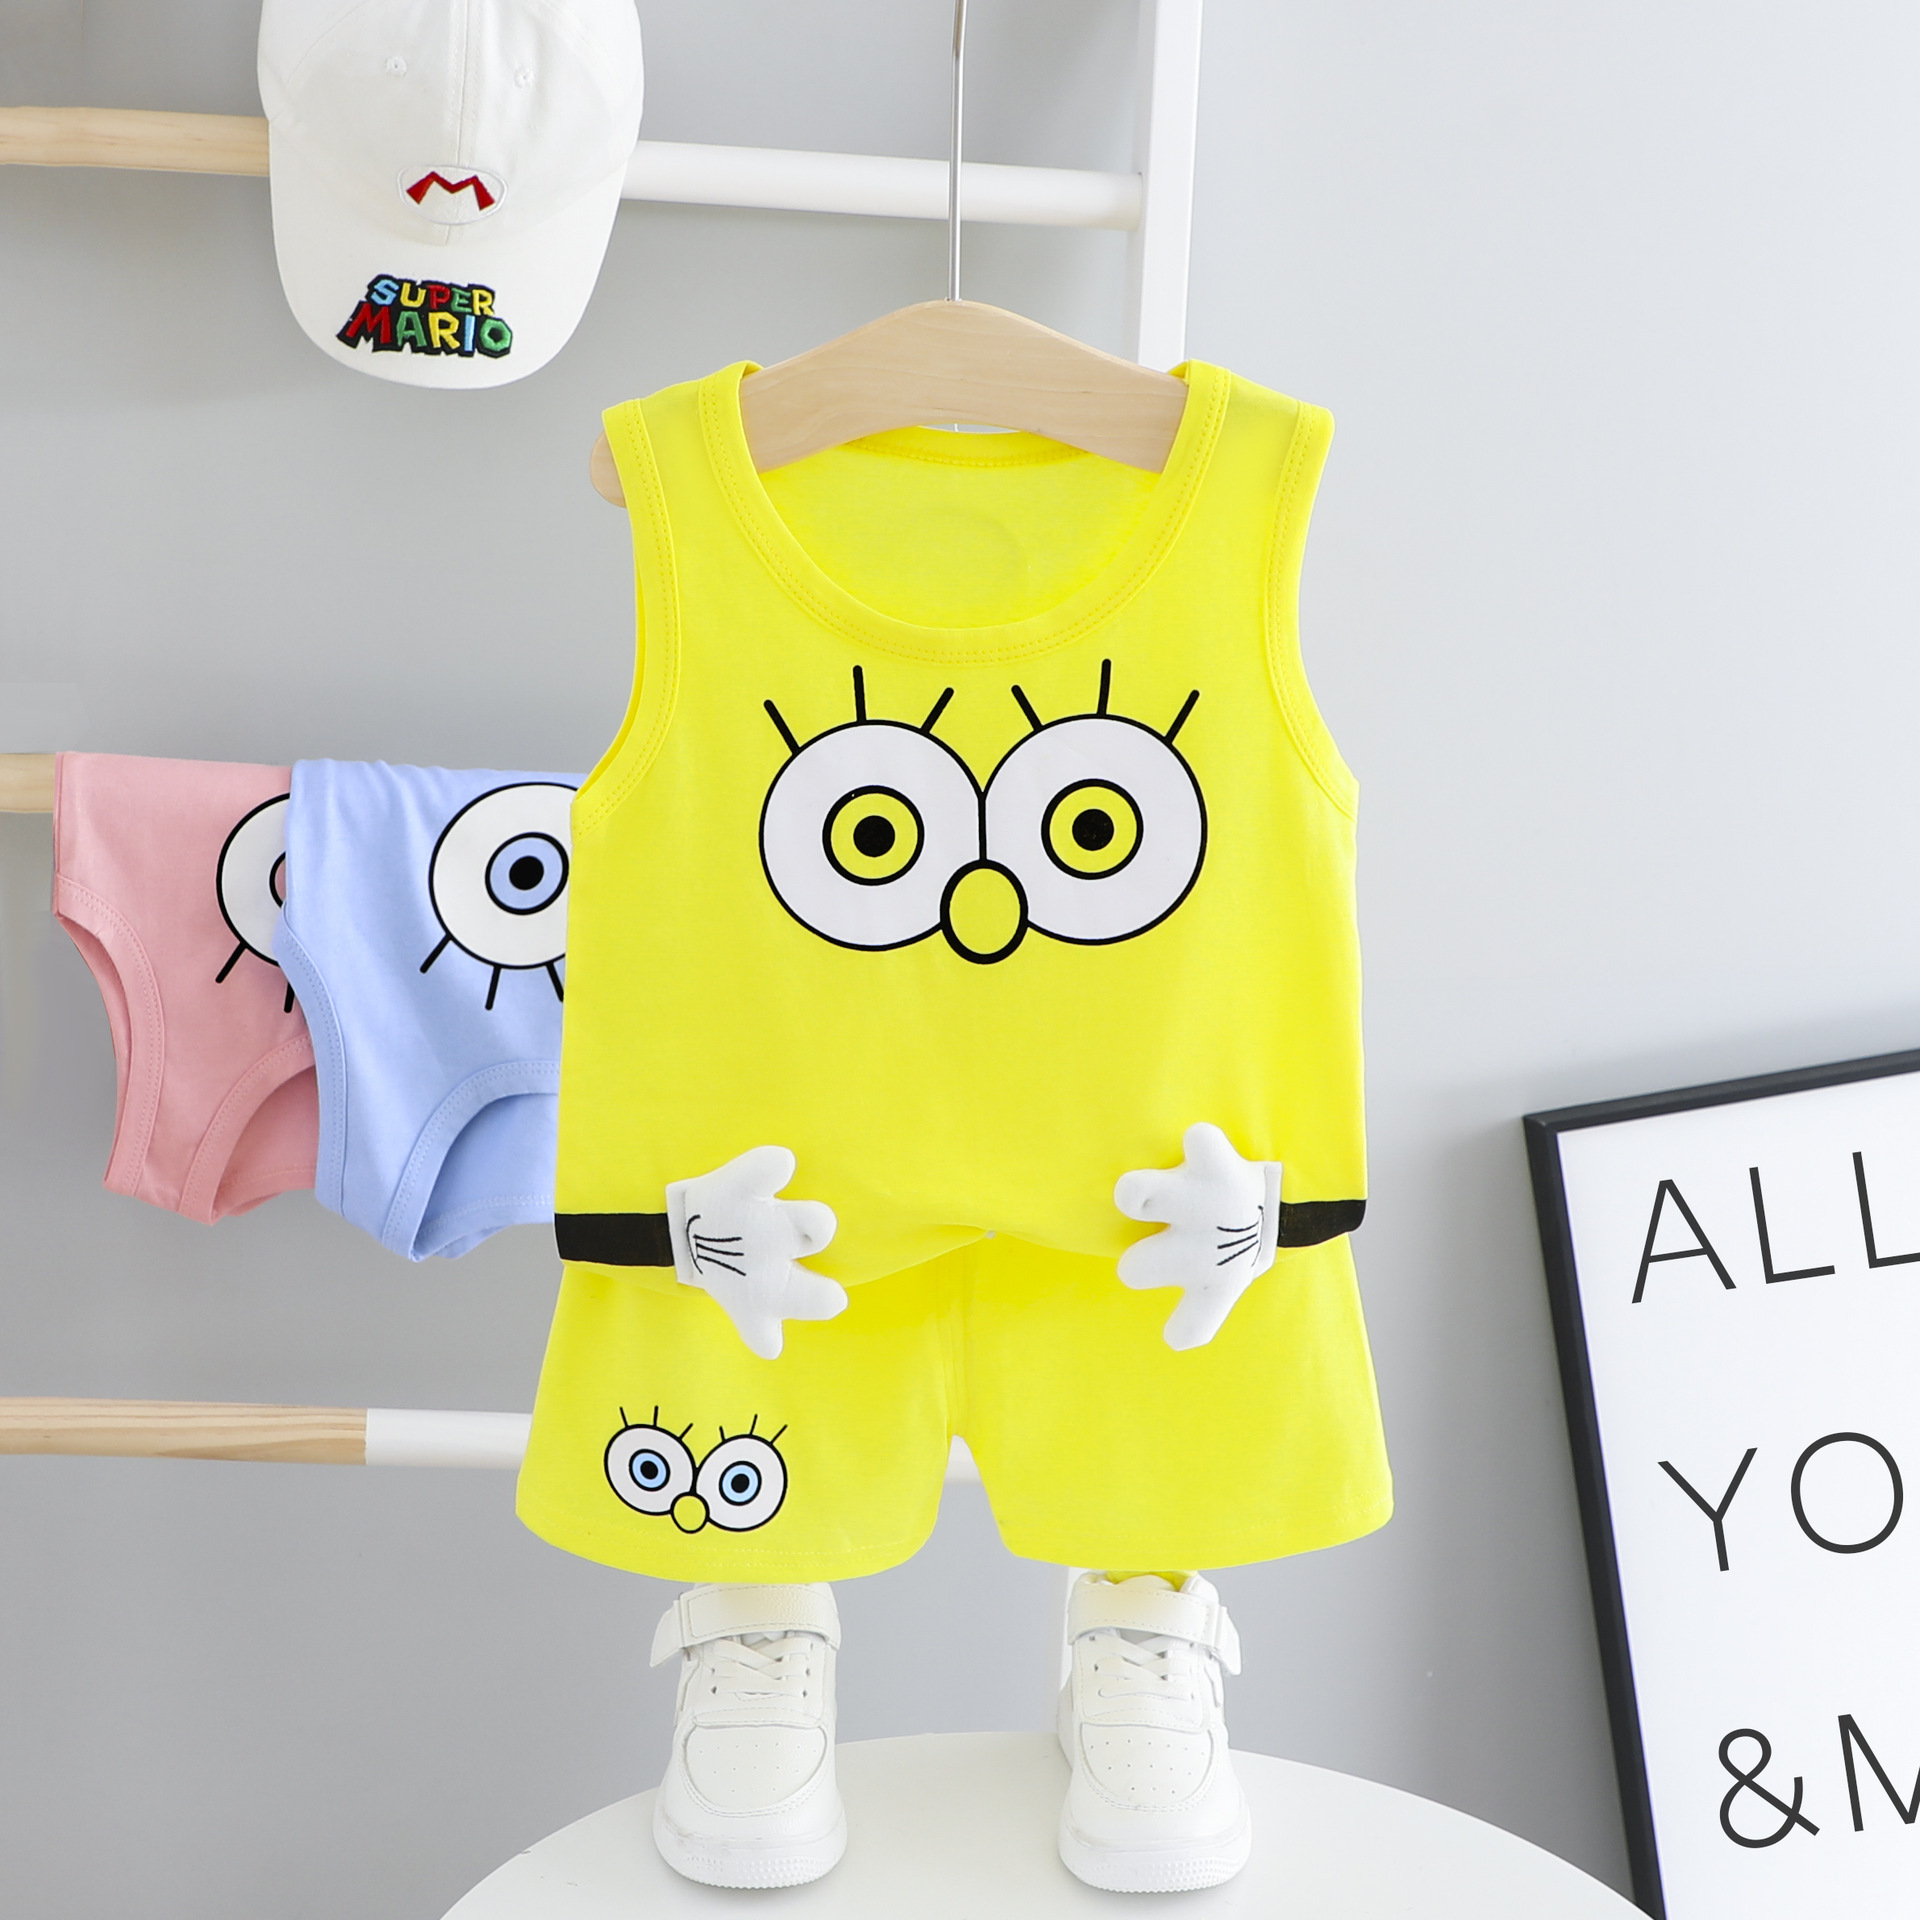 2020 Solid Color Cartoon Big Eyes Printed Vest Shorts 2pcs Baby